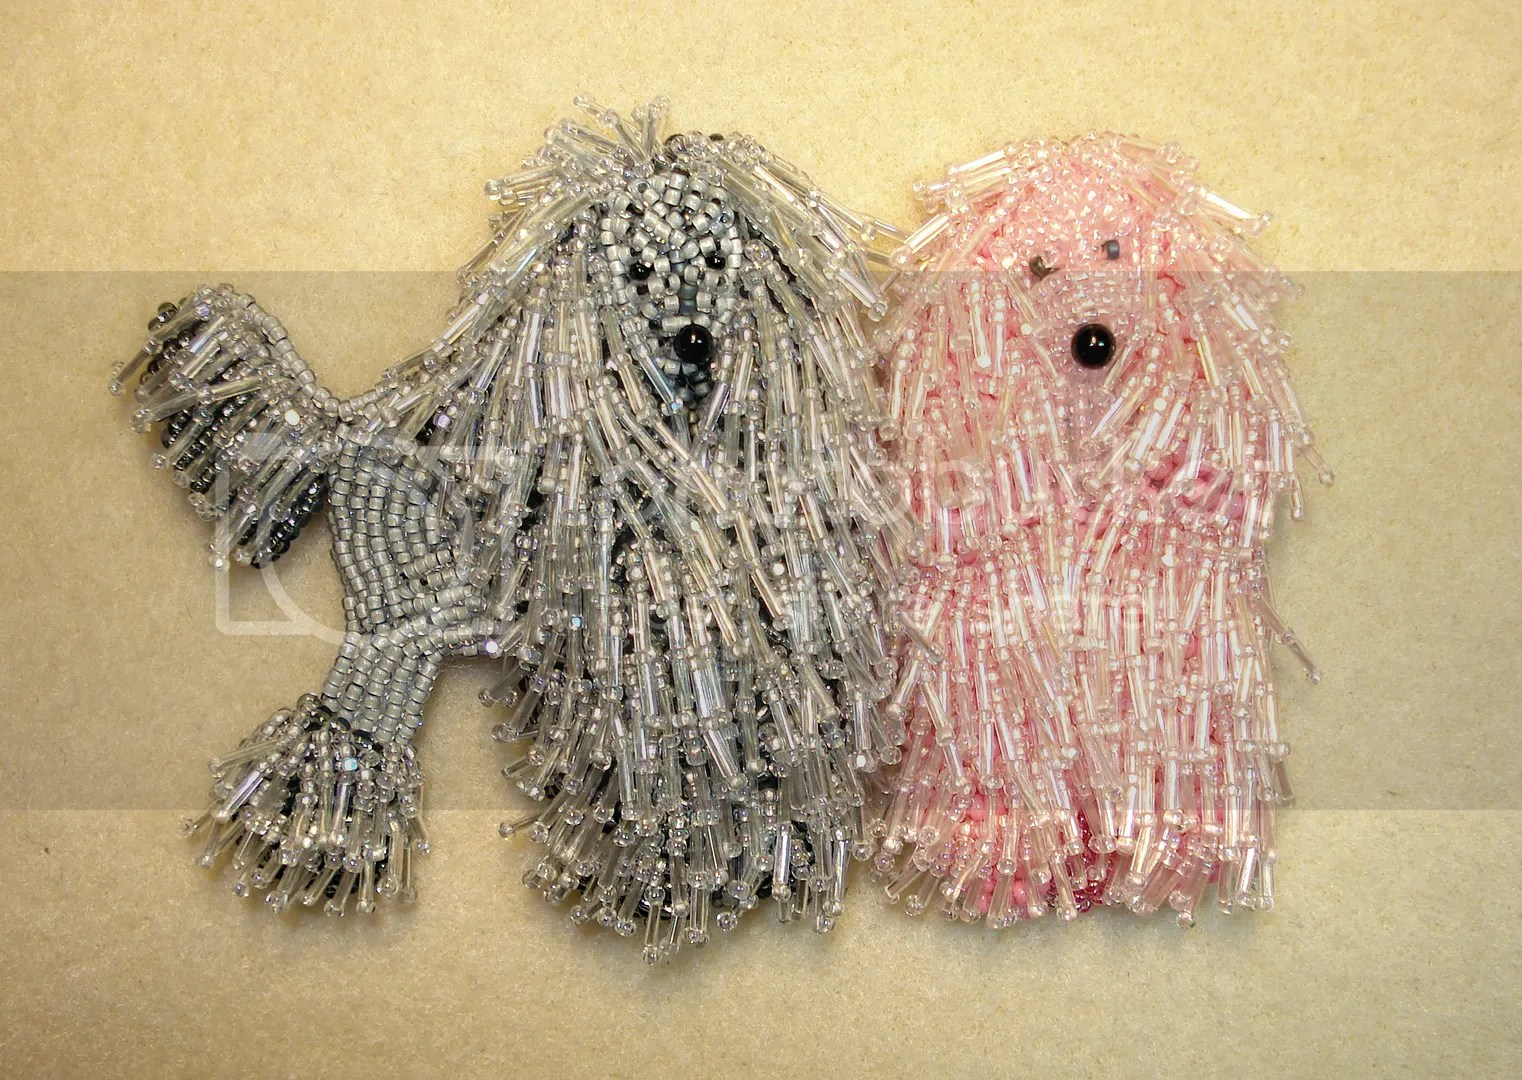 Micro maco beads beaded pink gray corded poodles dog collar bead embroidery